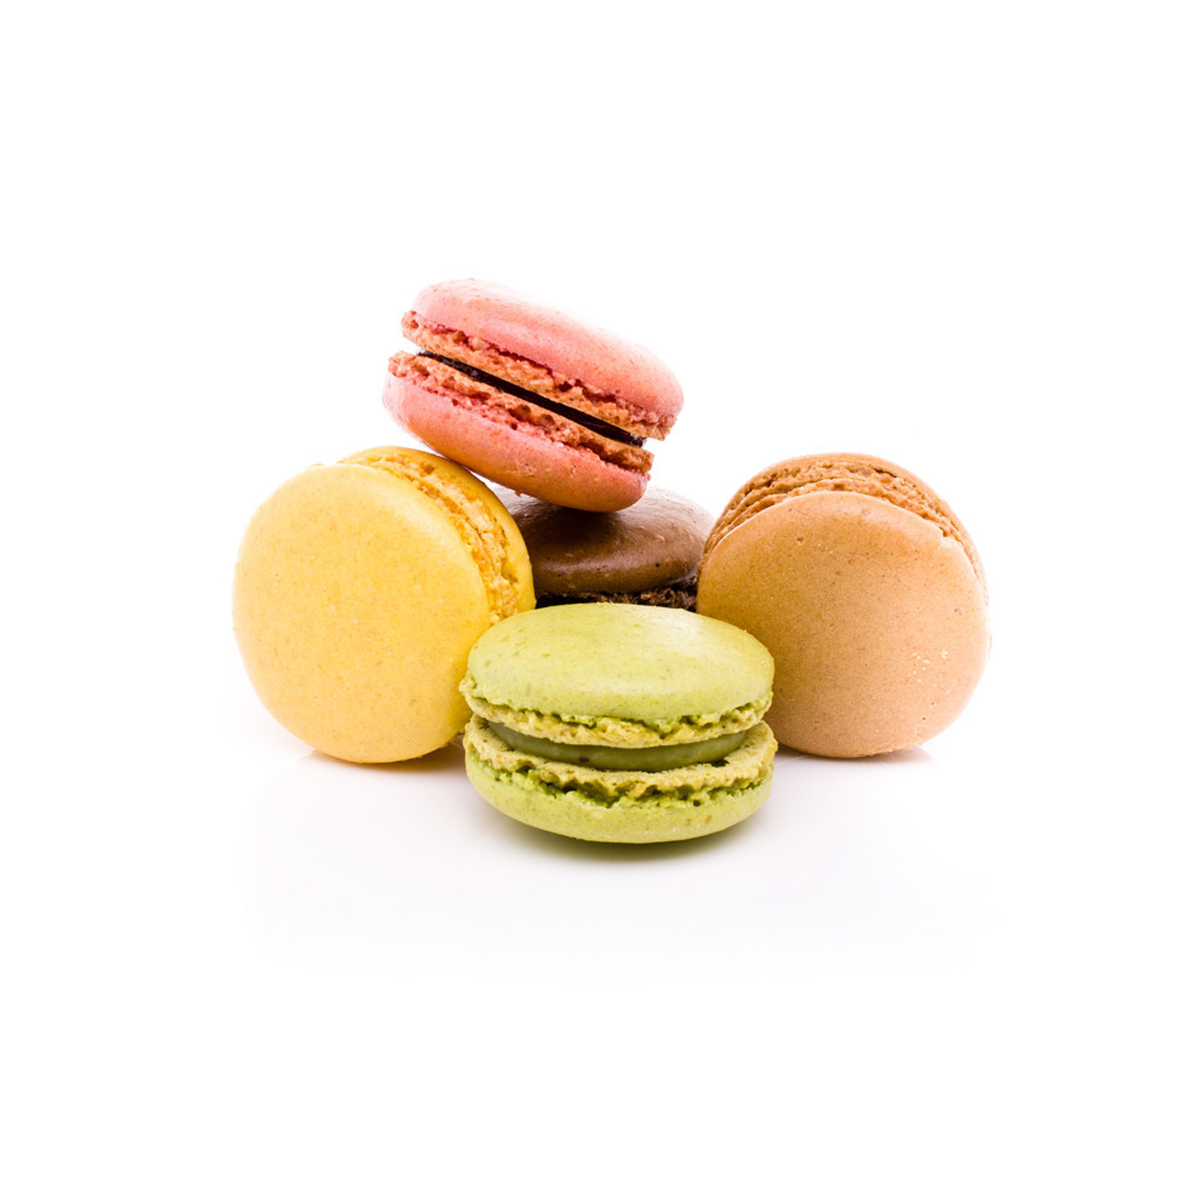 https://lemillefeuille.nl/wp-content/uploads/2018/06/home_assortiment_macarons.jpg